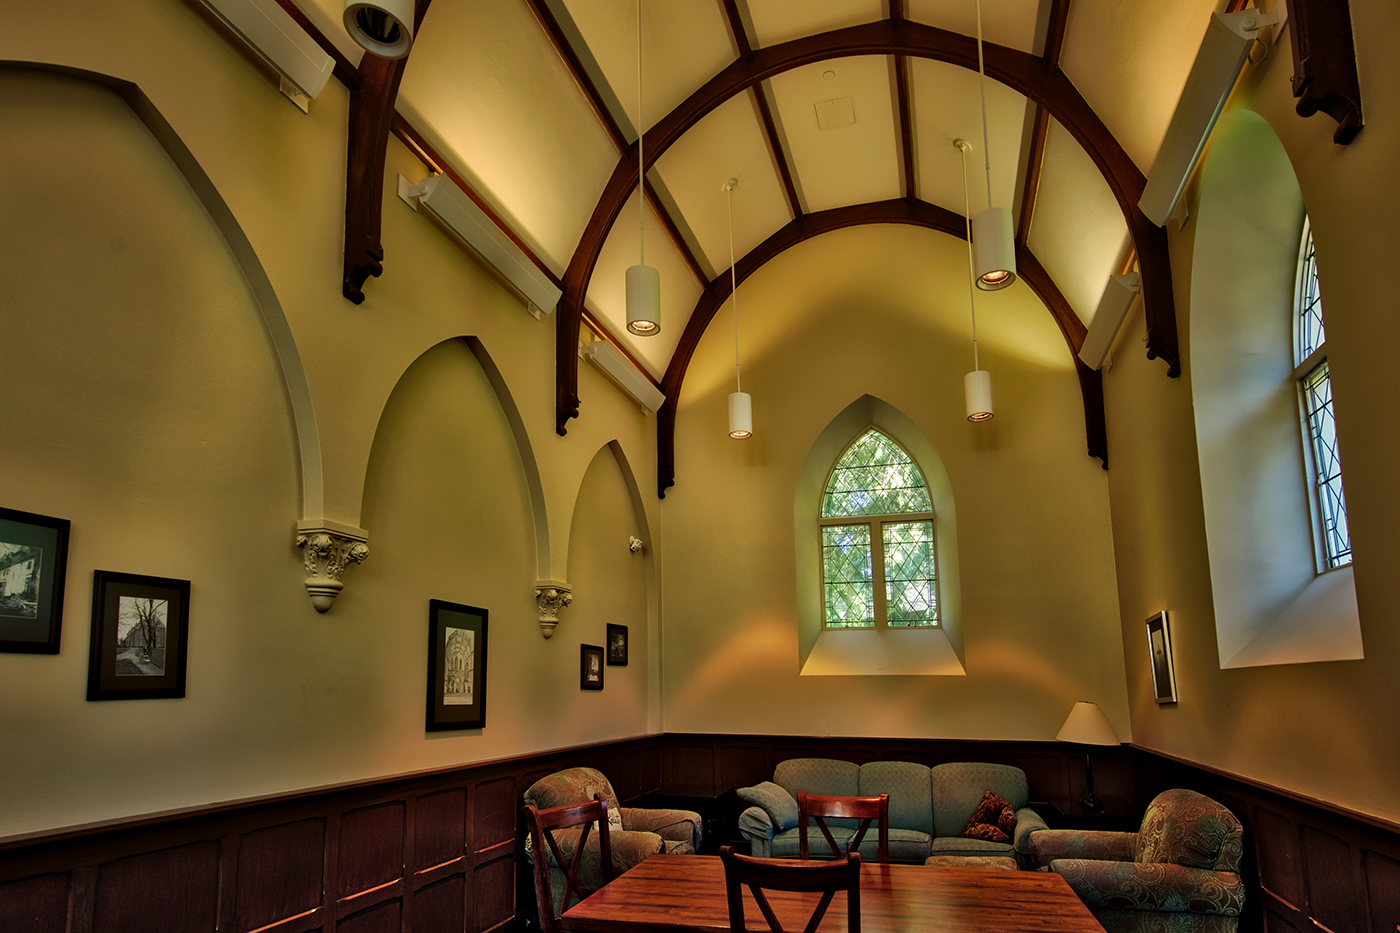 The Oratory, where students can study and relax in between classes or before they rest for the evening